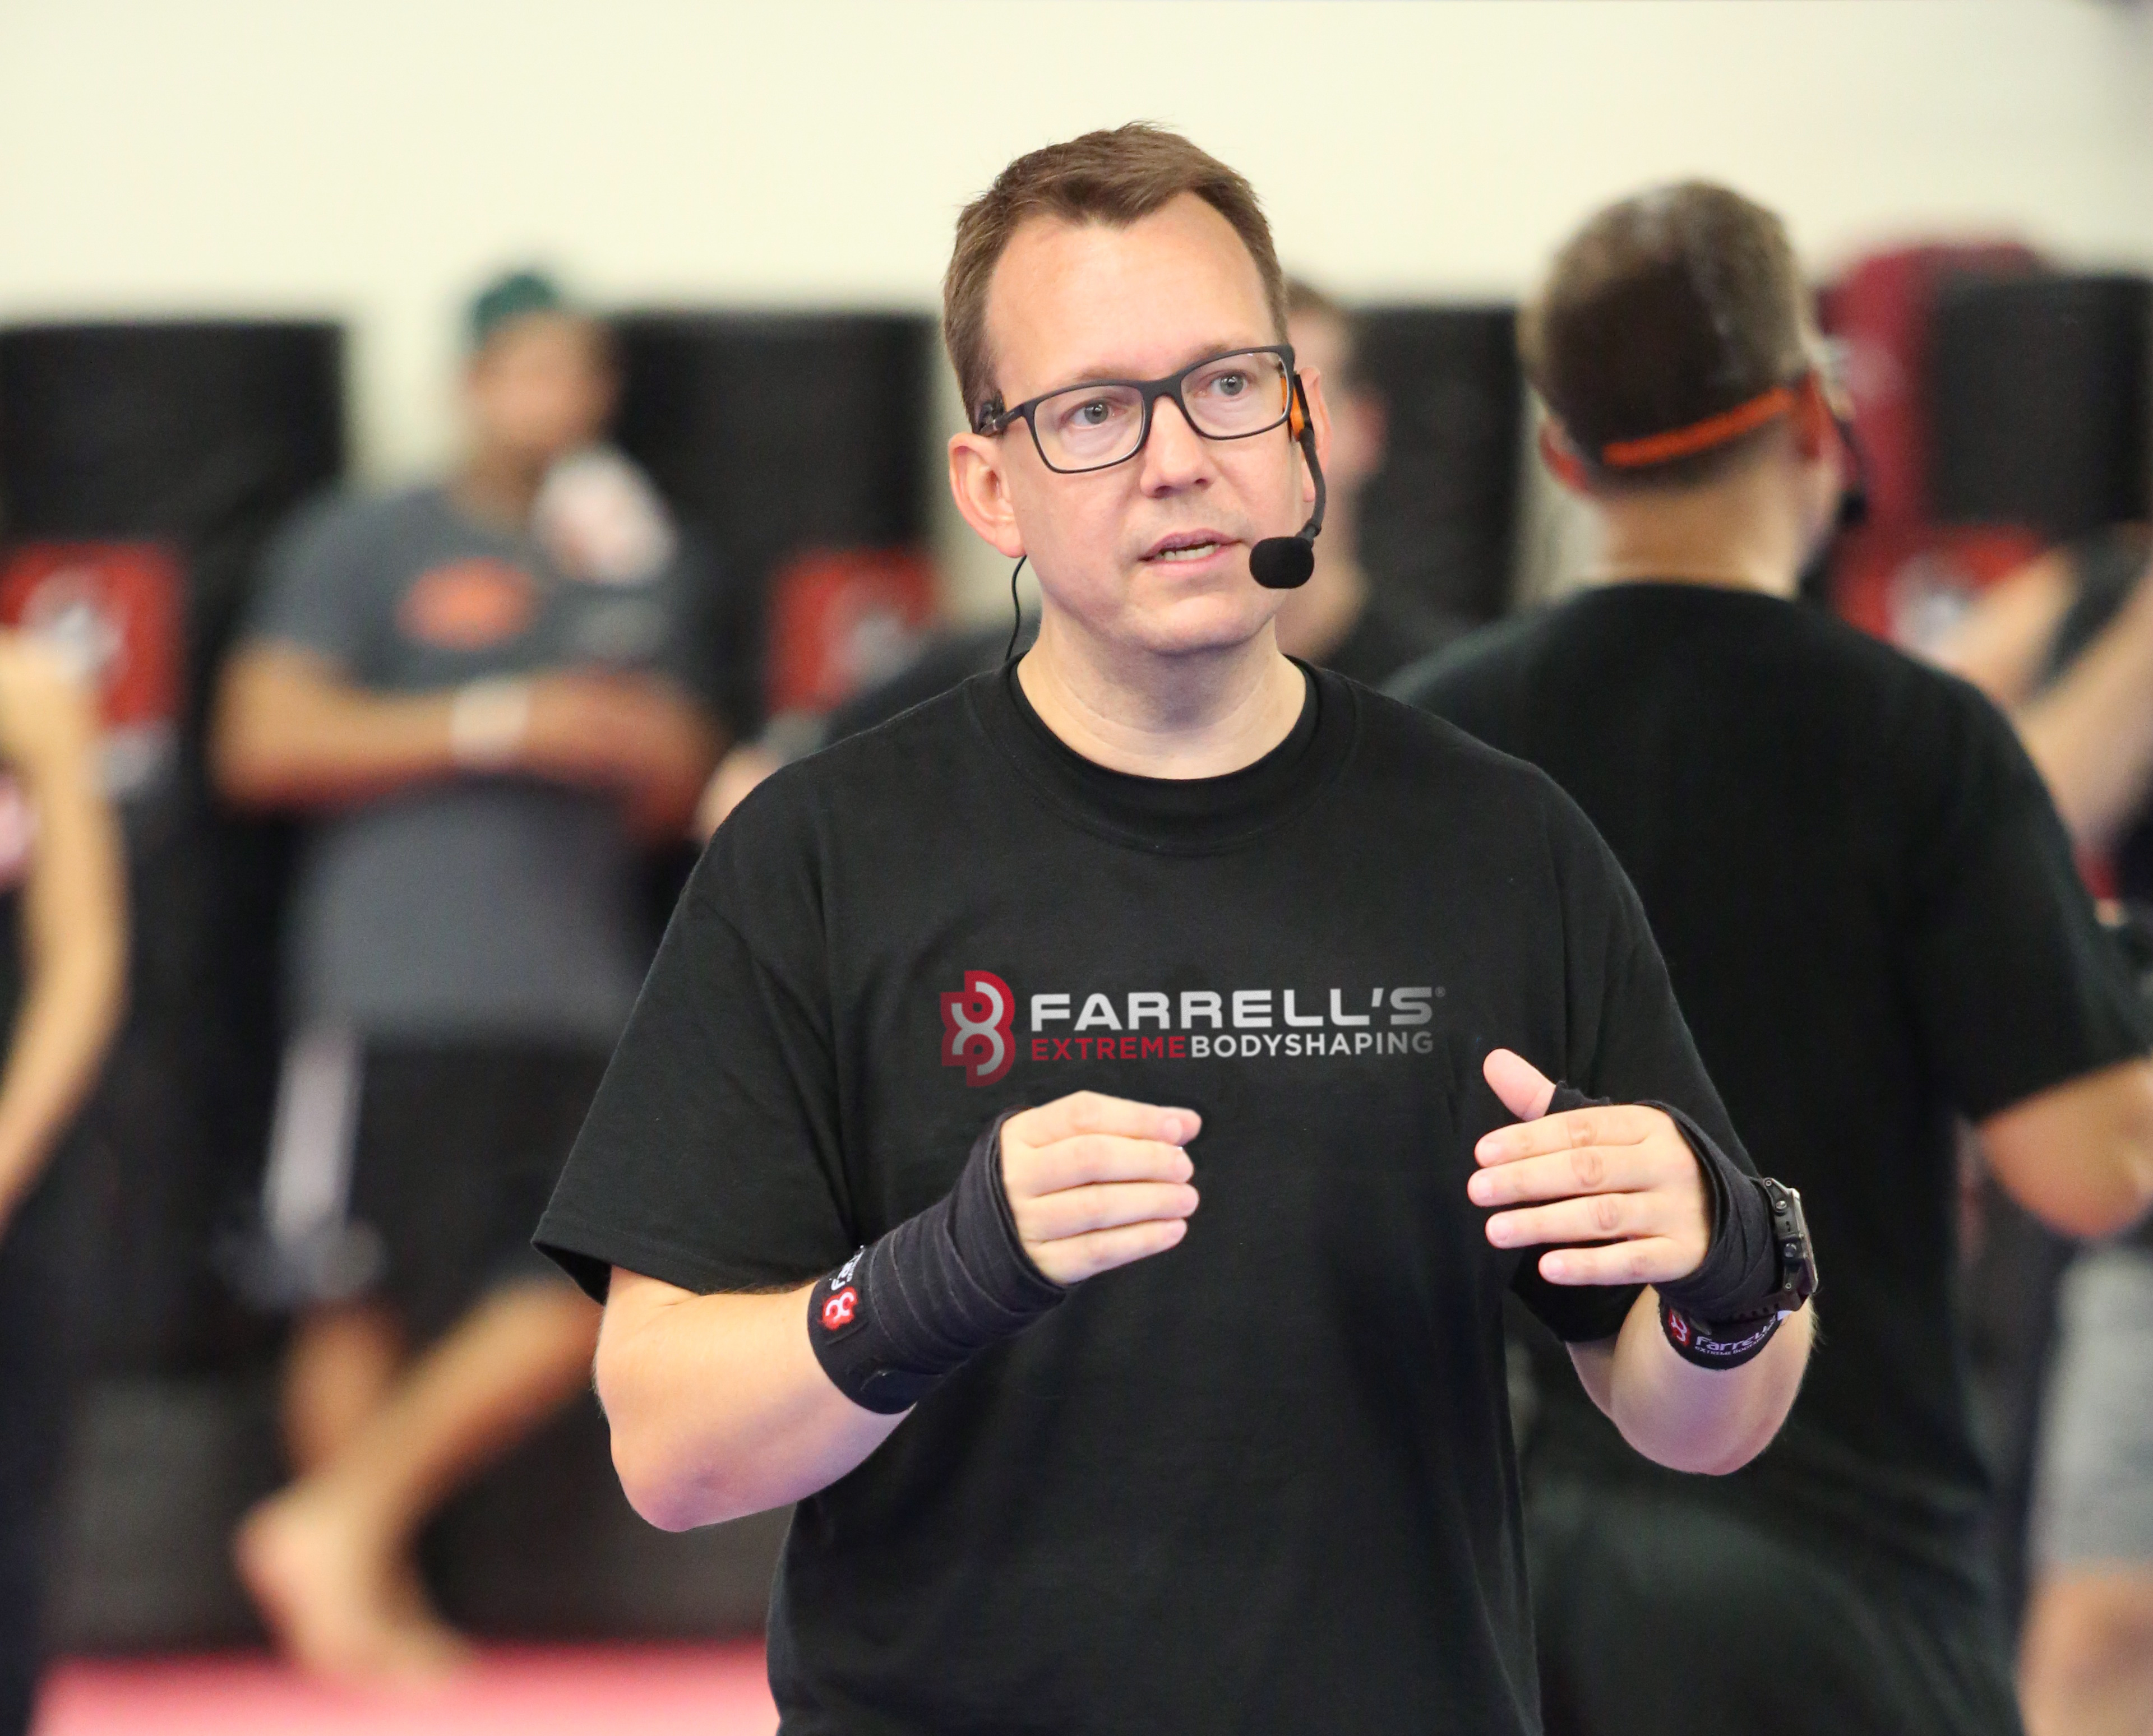 Motivational Coaches & Instructors at Farrell's eXtreme Bodyshaping